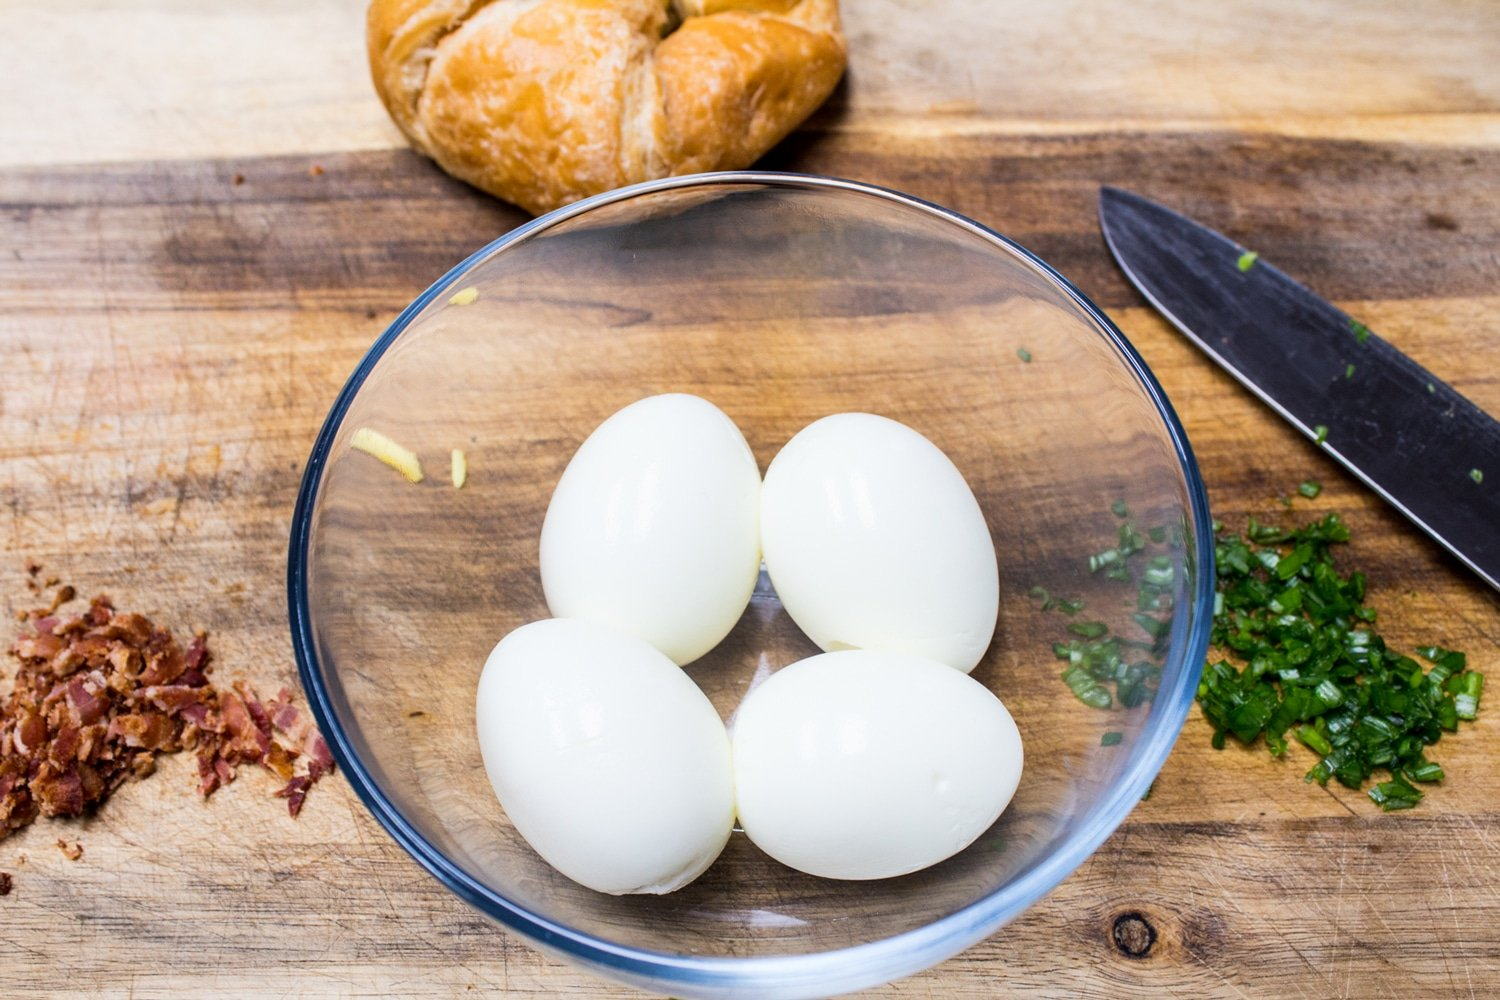 Hard boiled eggs peeled and ready to mix up with egg salad ingredients